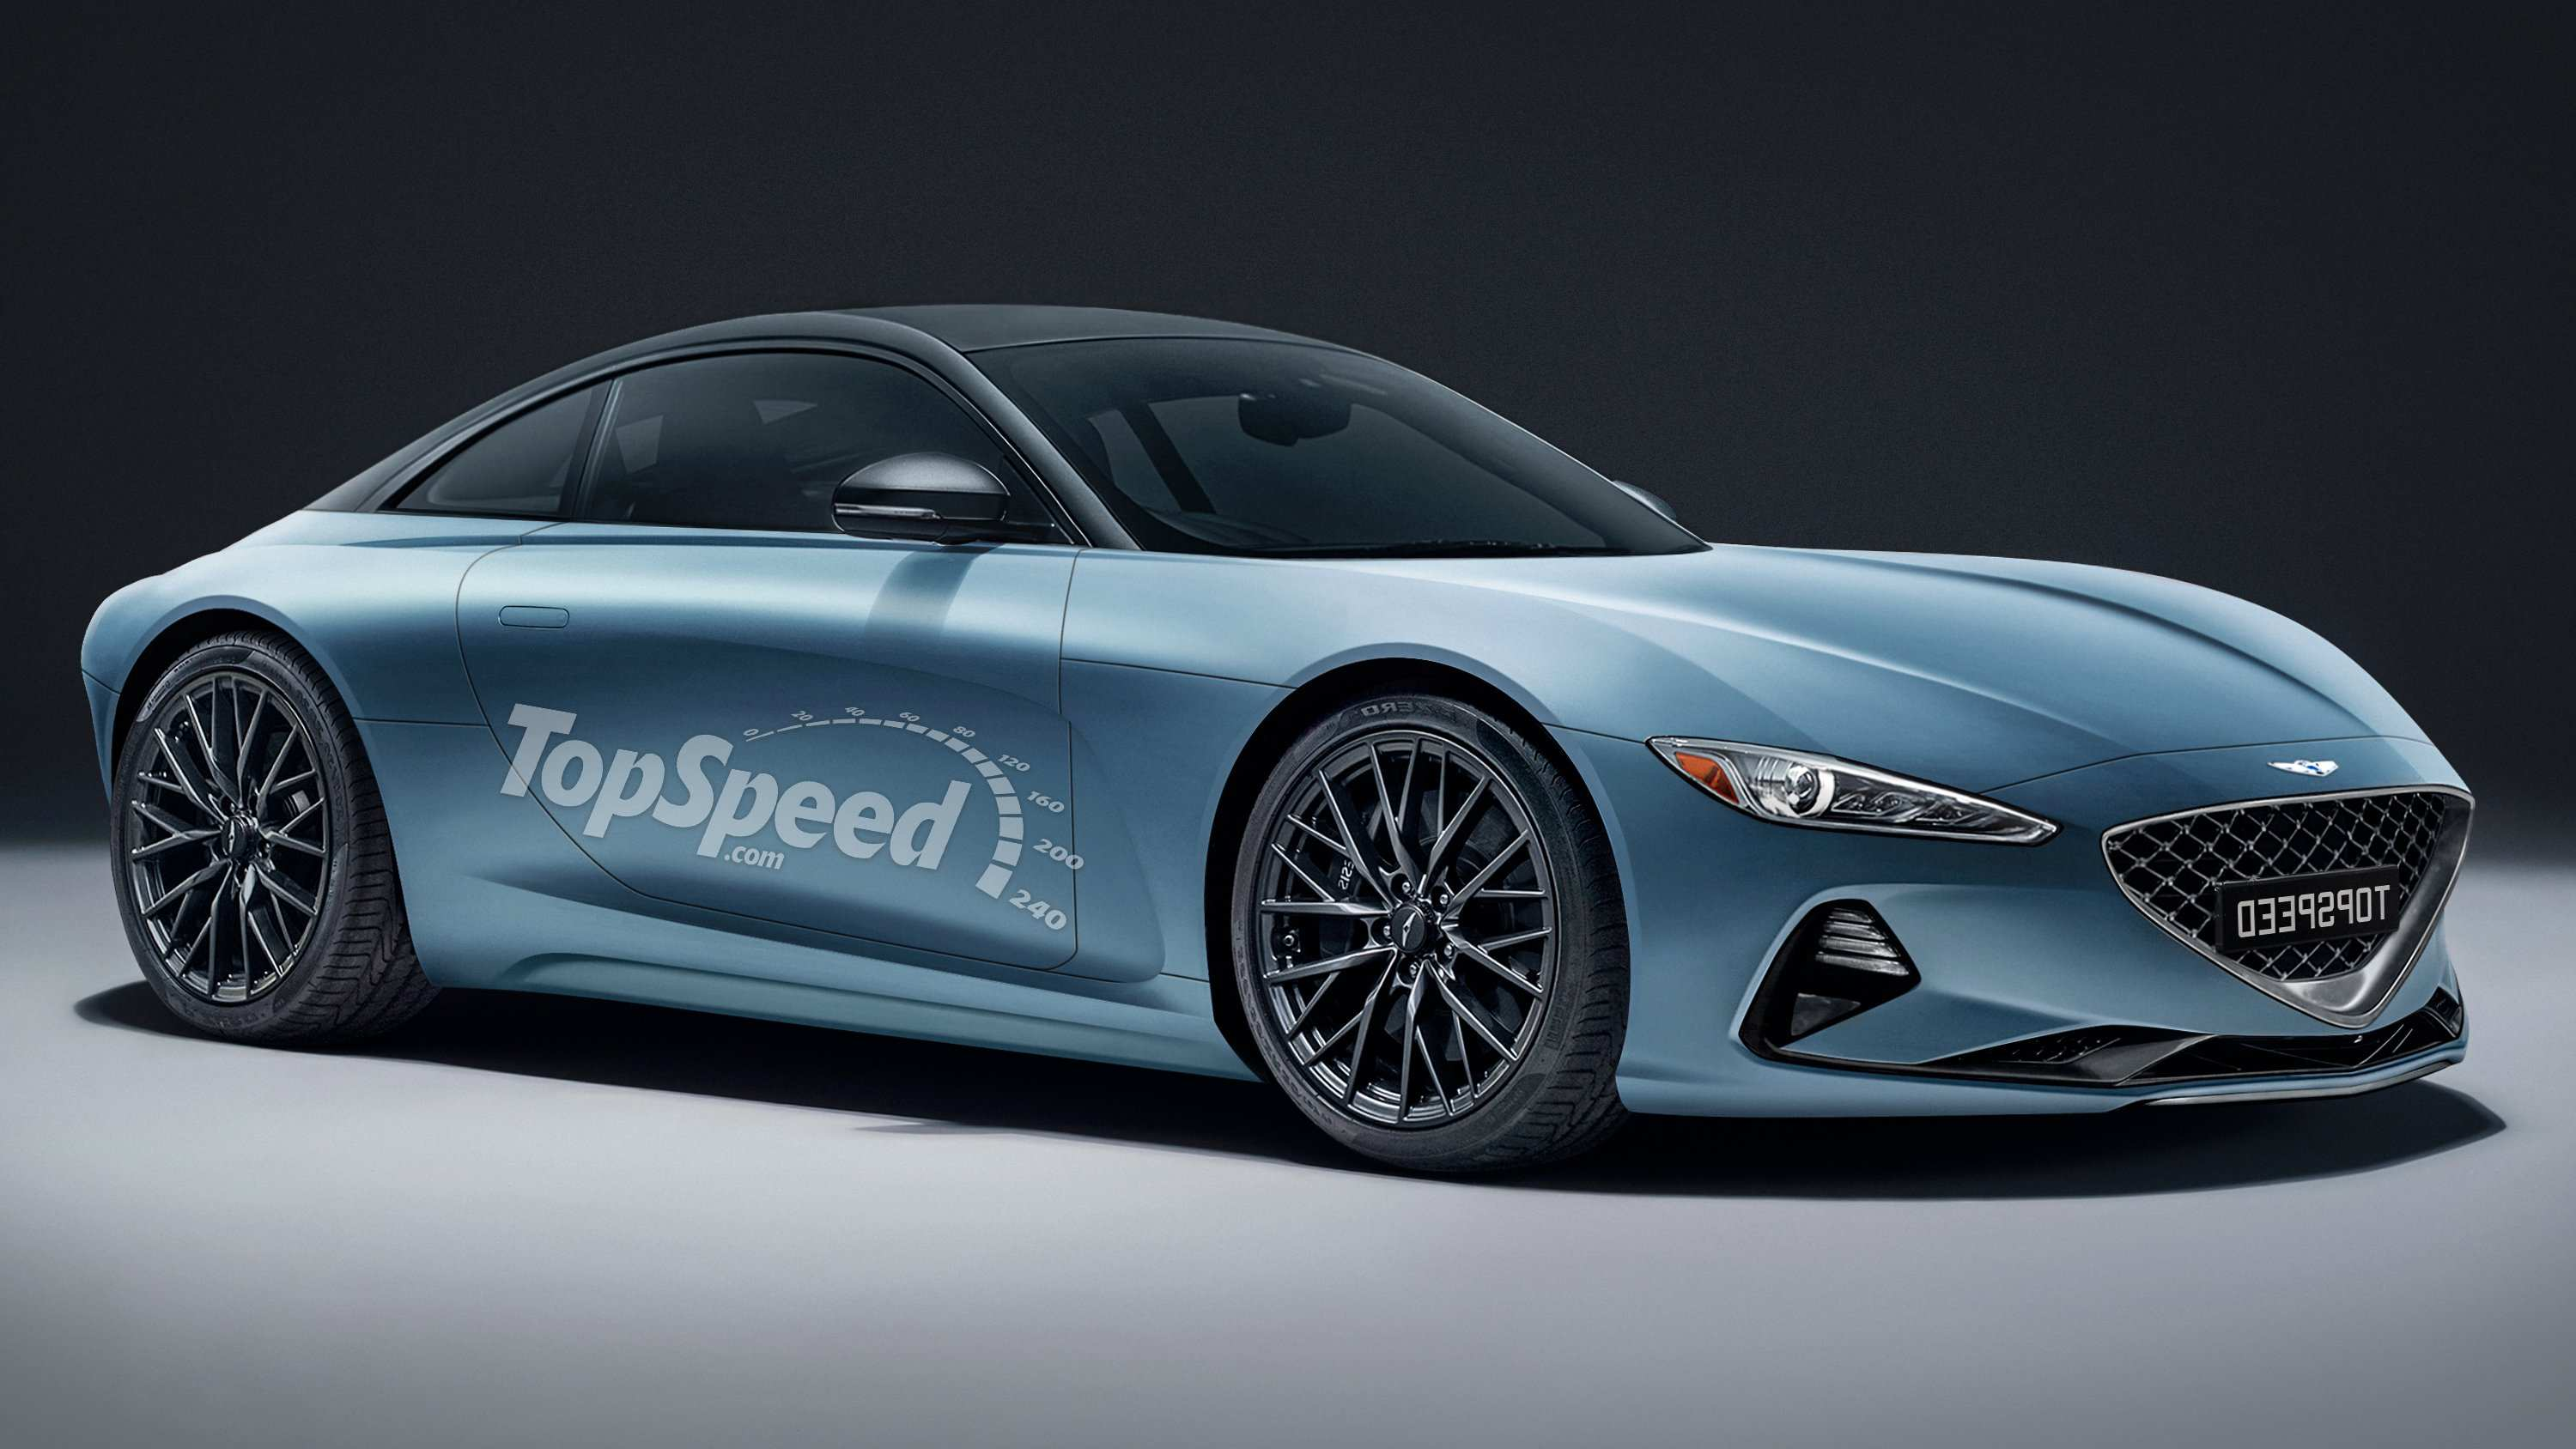 89 All New 2020 Hyundai Genesis Coupe First Drive for 2020 Hyundai Genesis Coupe